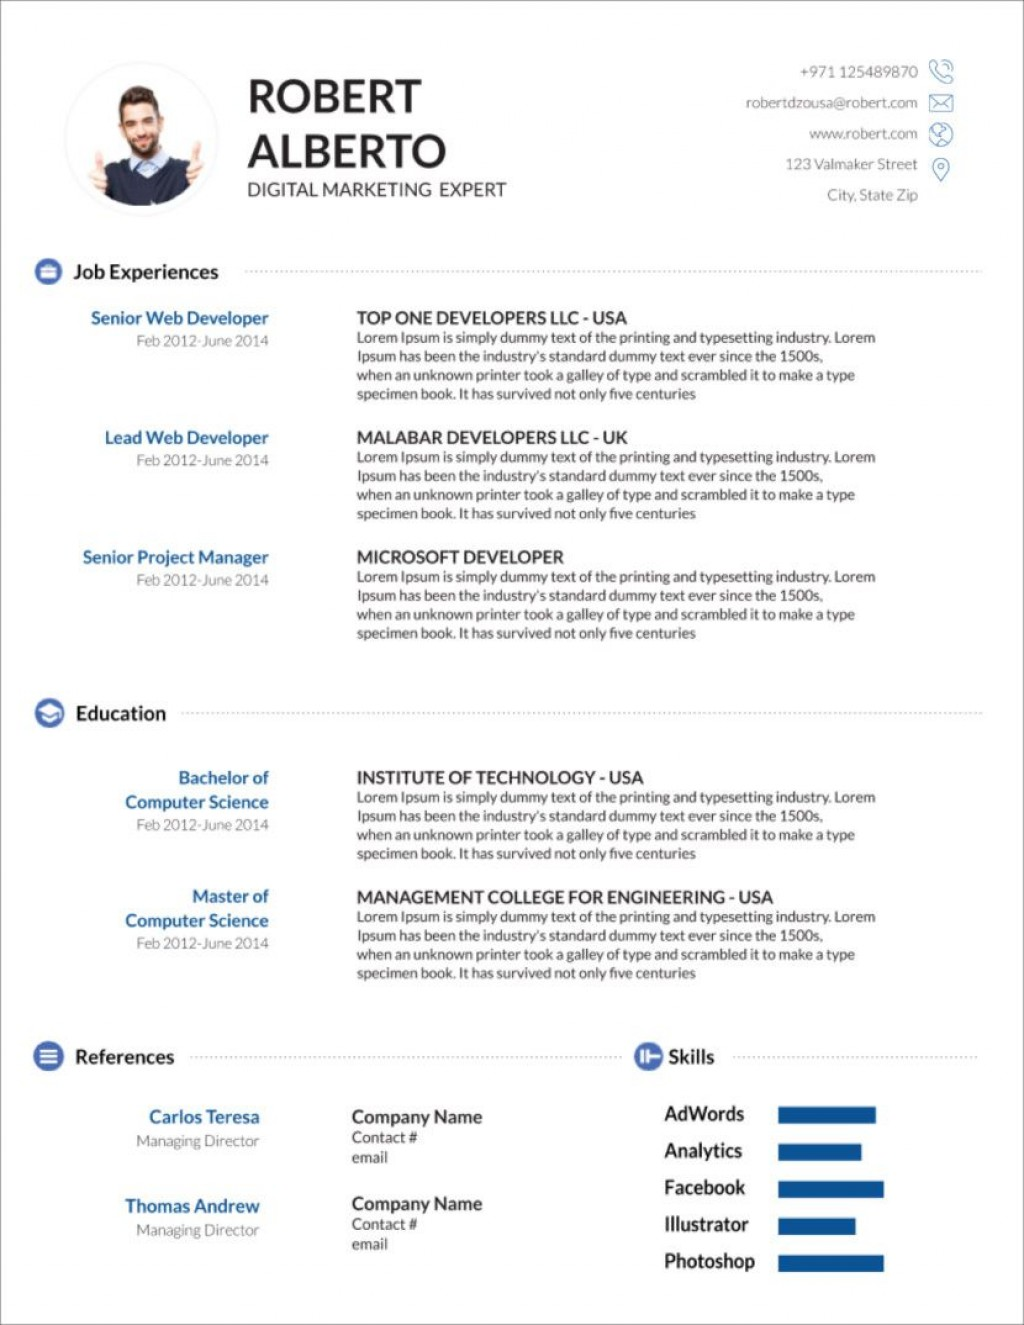 008 Outstanding Resume Template Word Download Image  For Fresher In Format Free 2020Large